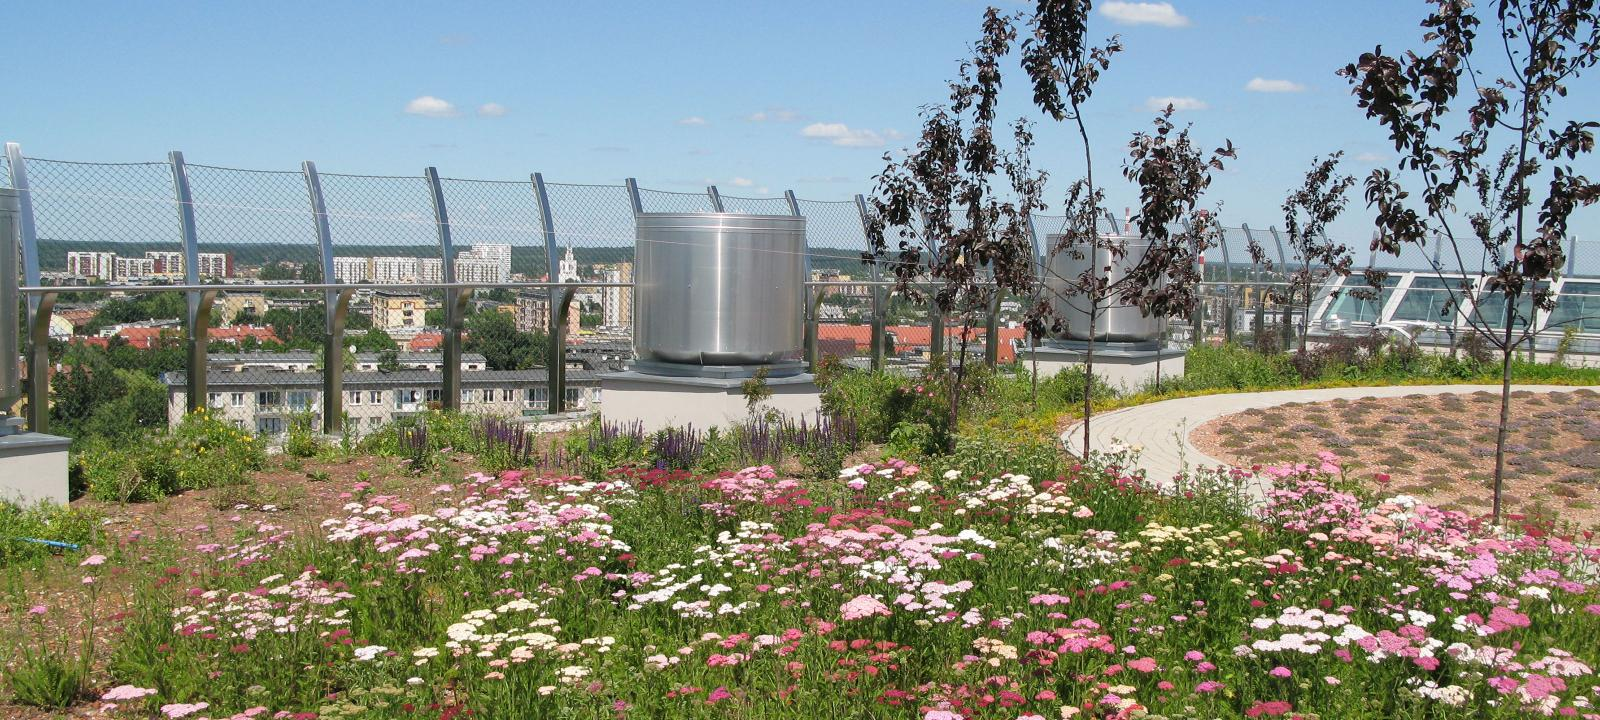 Roof garden with pink yarrow